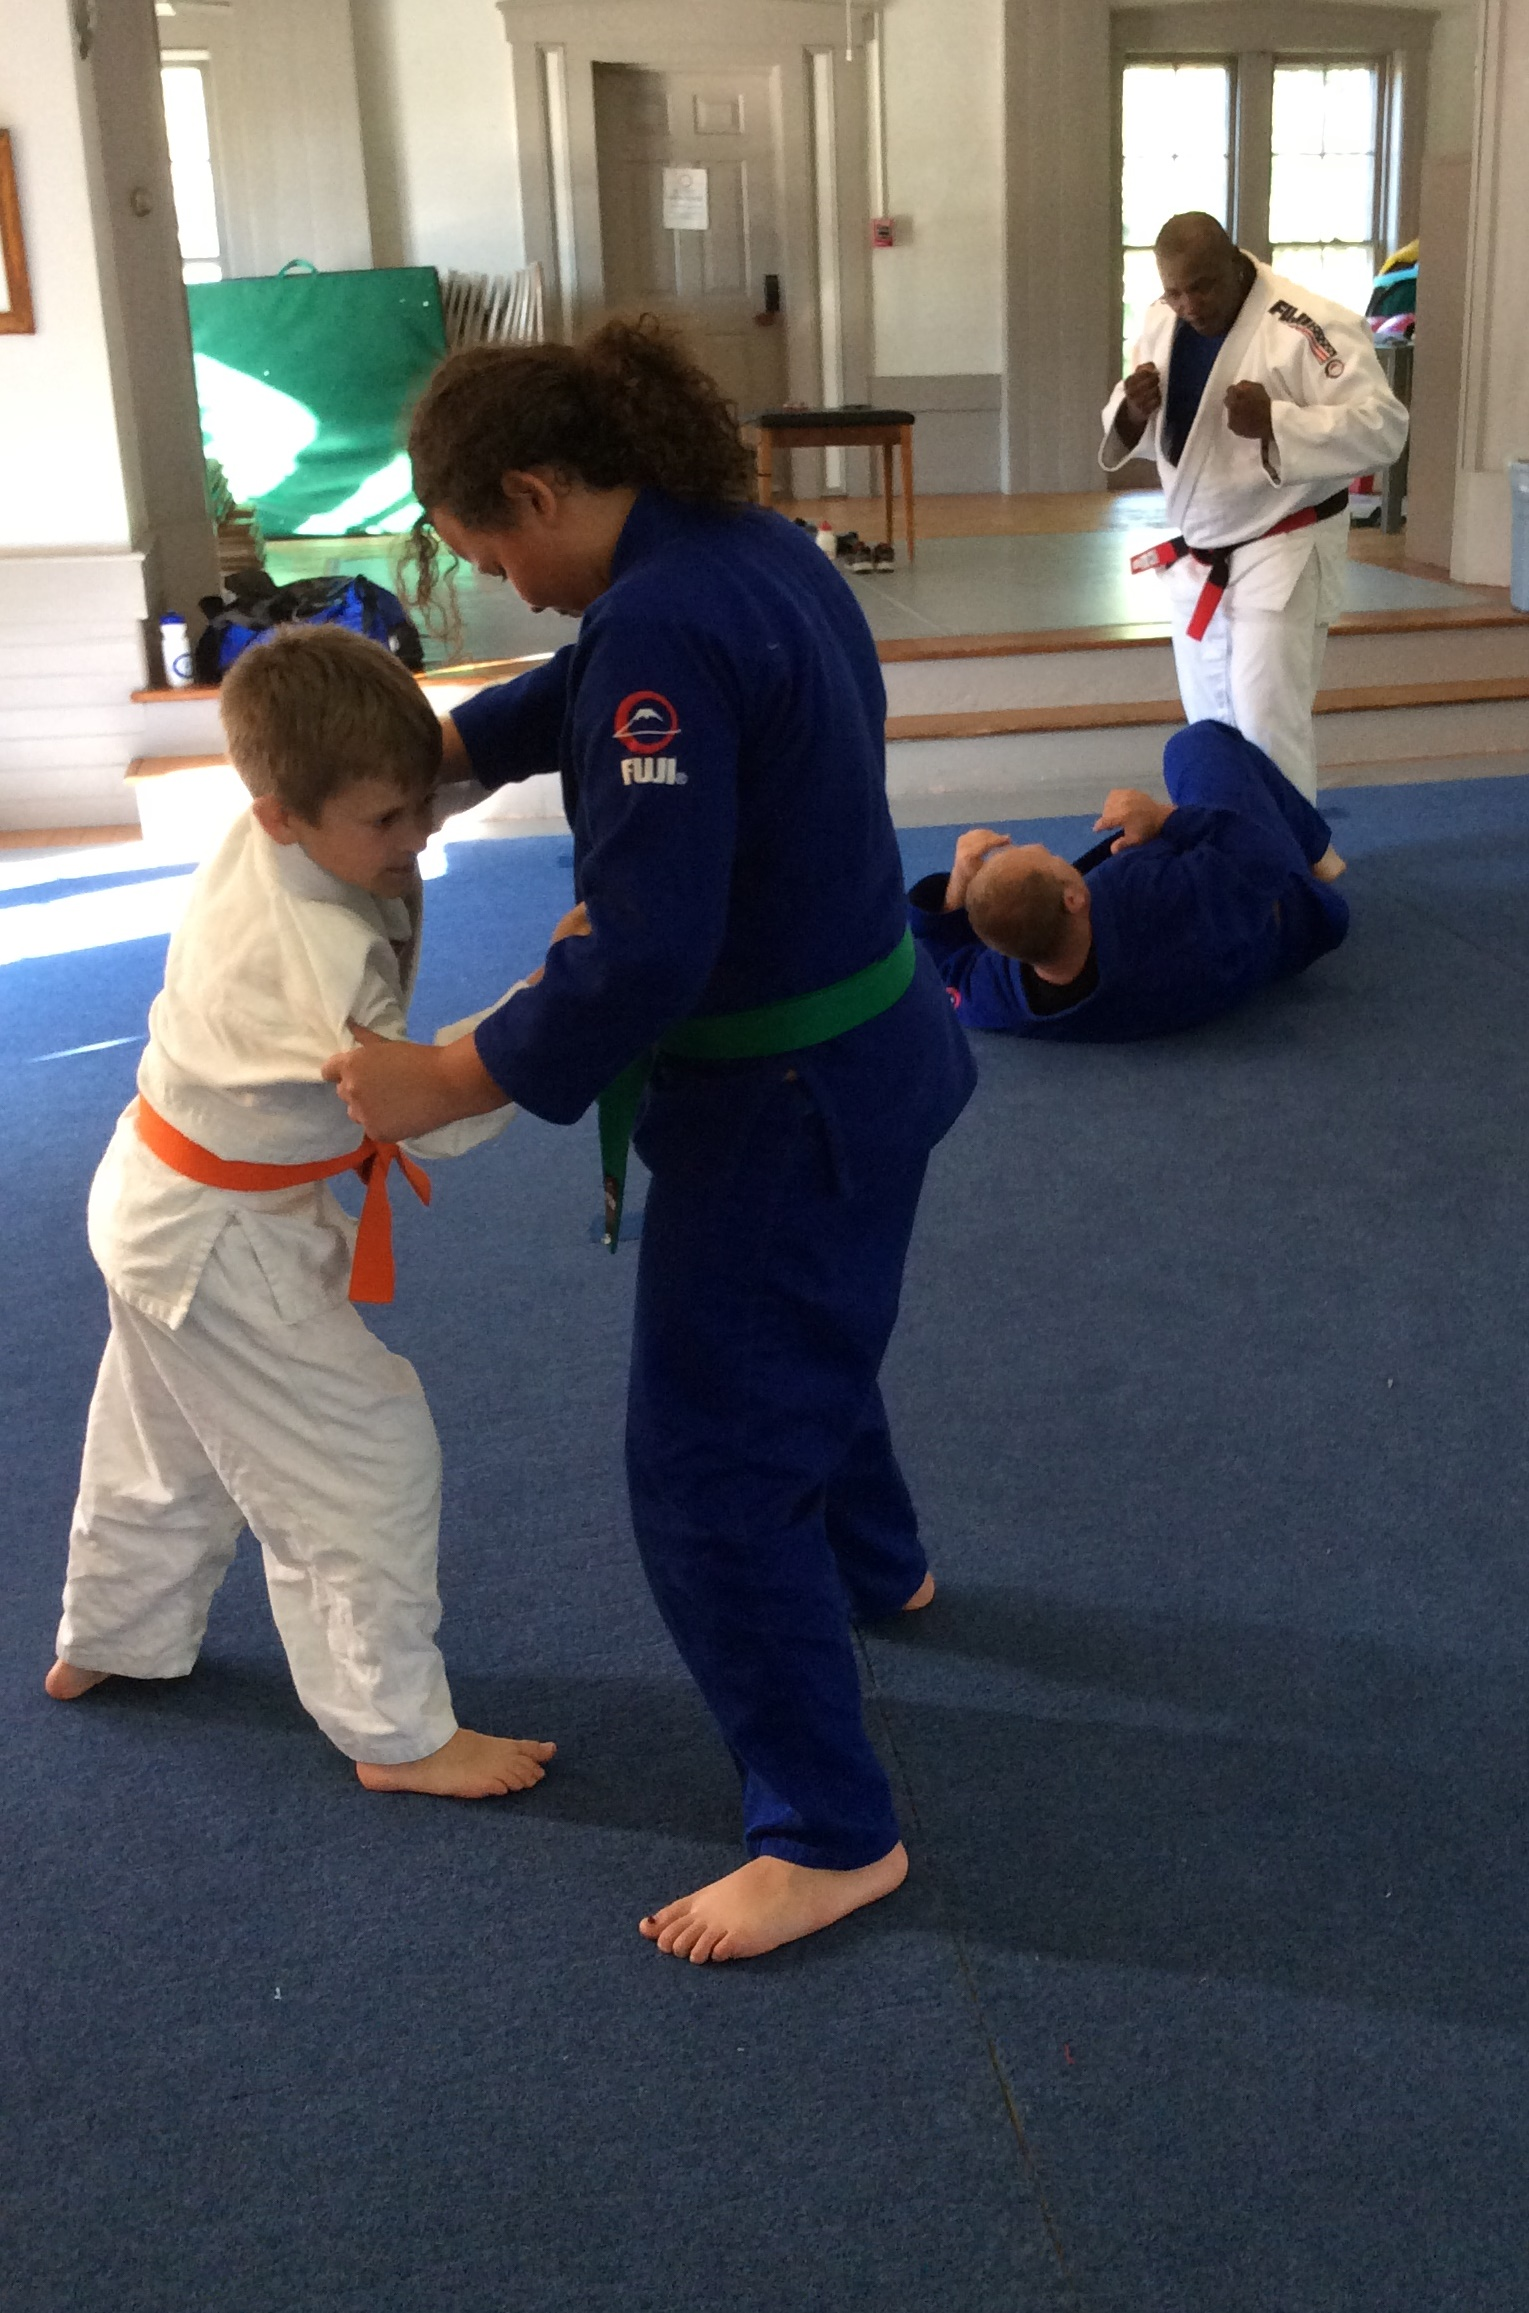 Judo classes are offered all year round for kids and adults.